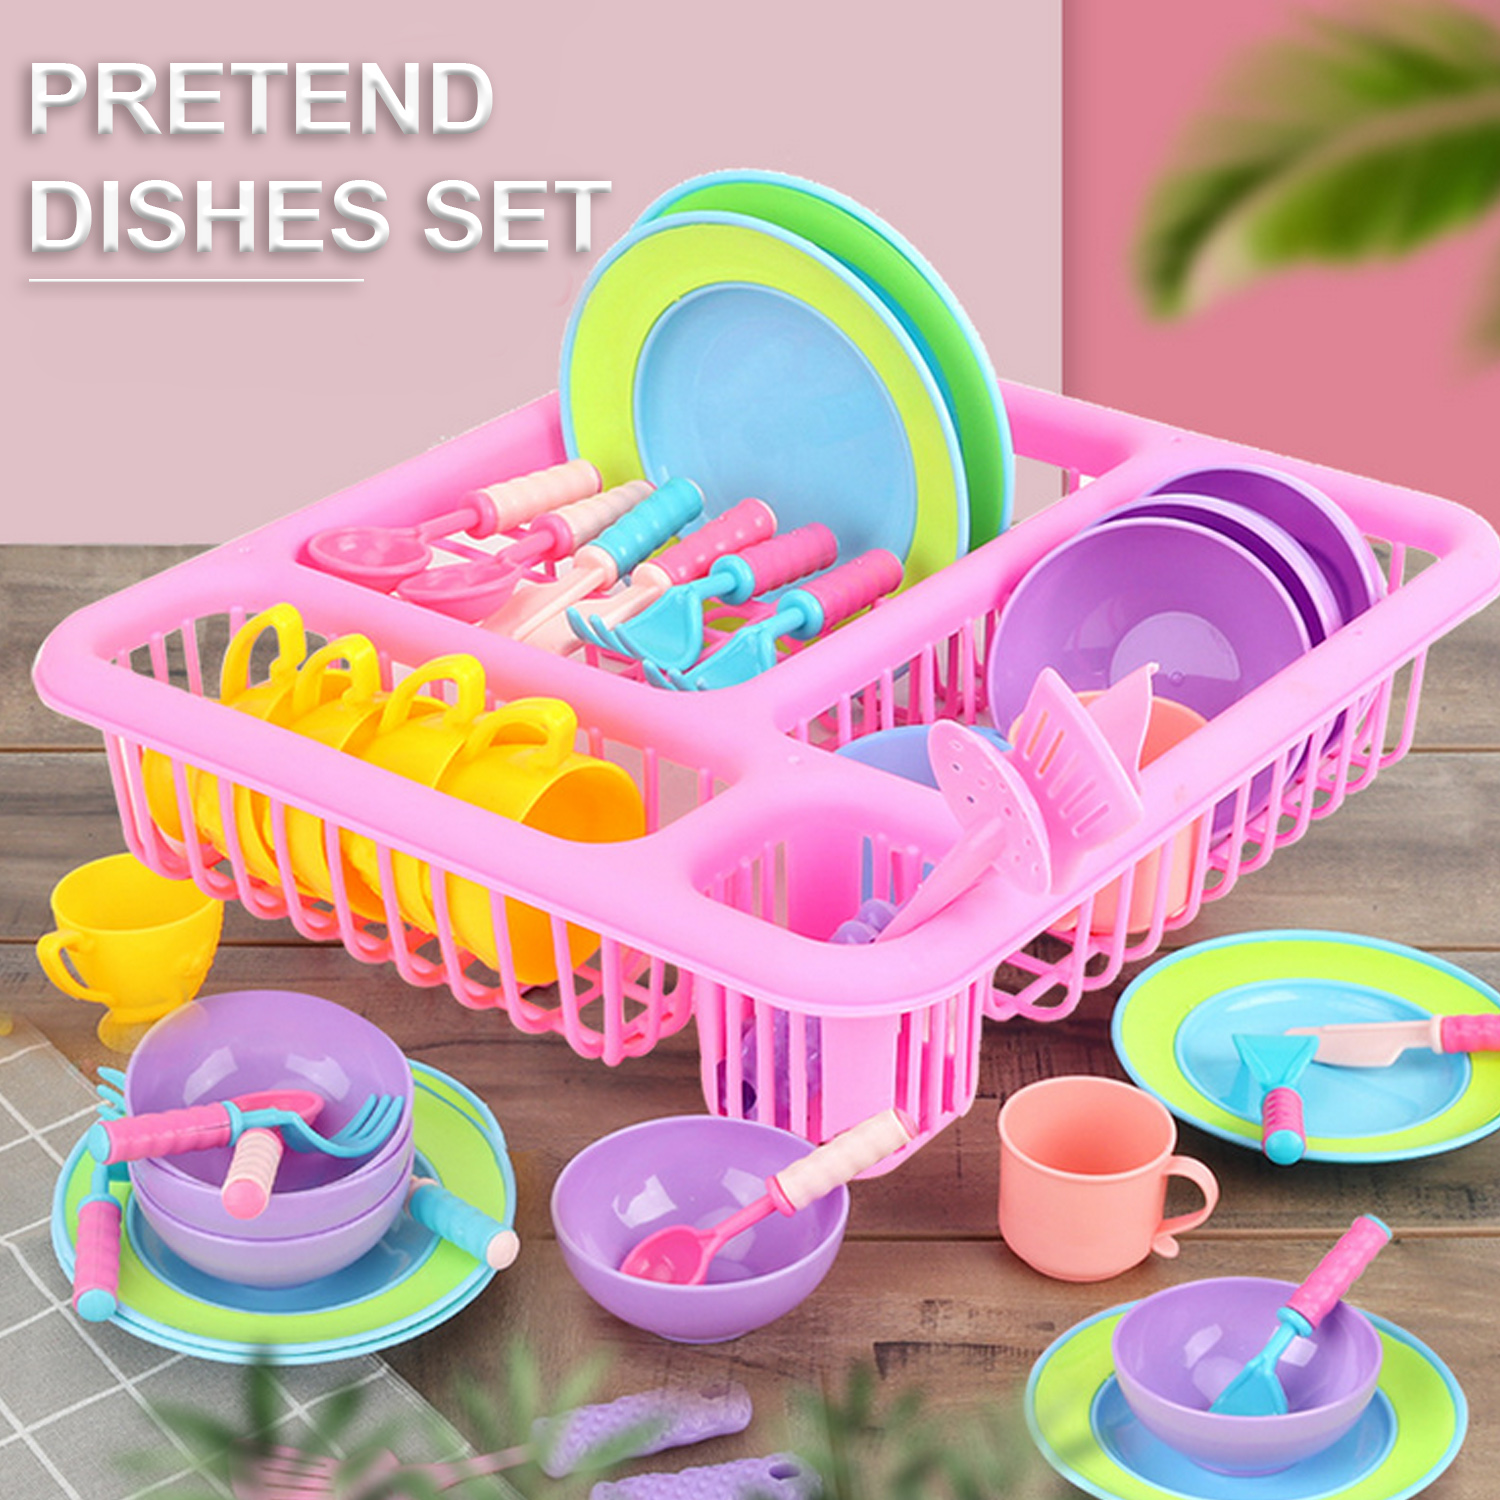 Kids 21pcs Tableware Dishes Plates Bowls Cups Knife Fork Spoon Cookware Kitchen Drainer Cooking Dry Rack Tool Pretend Play Toy